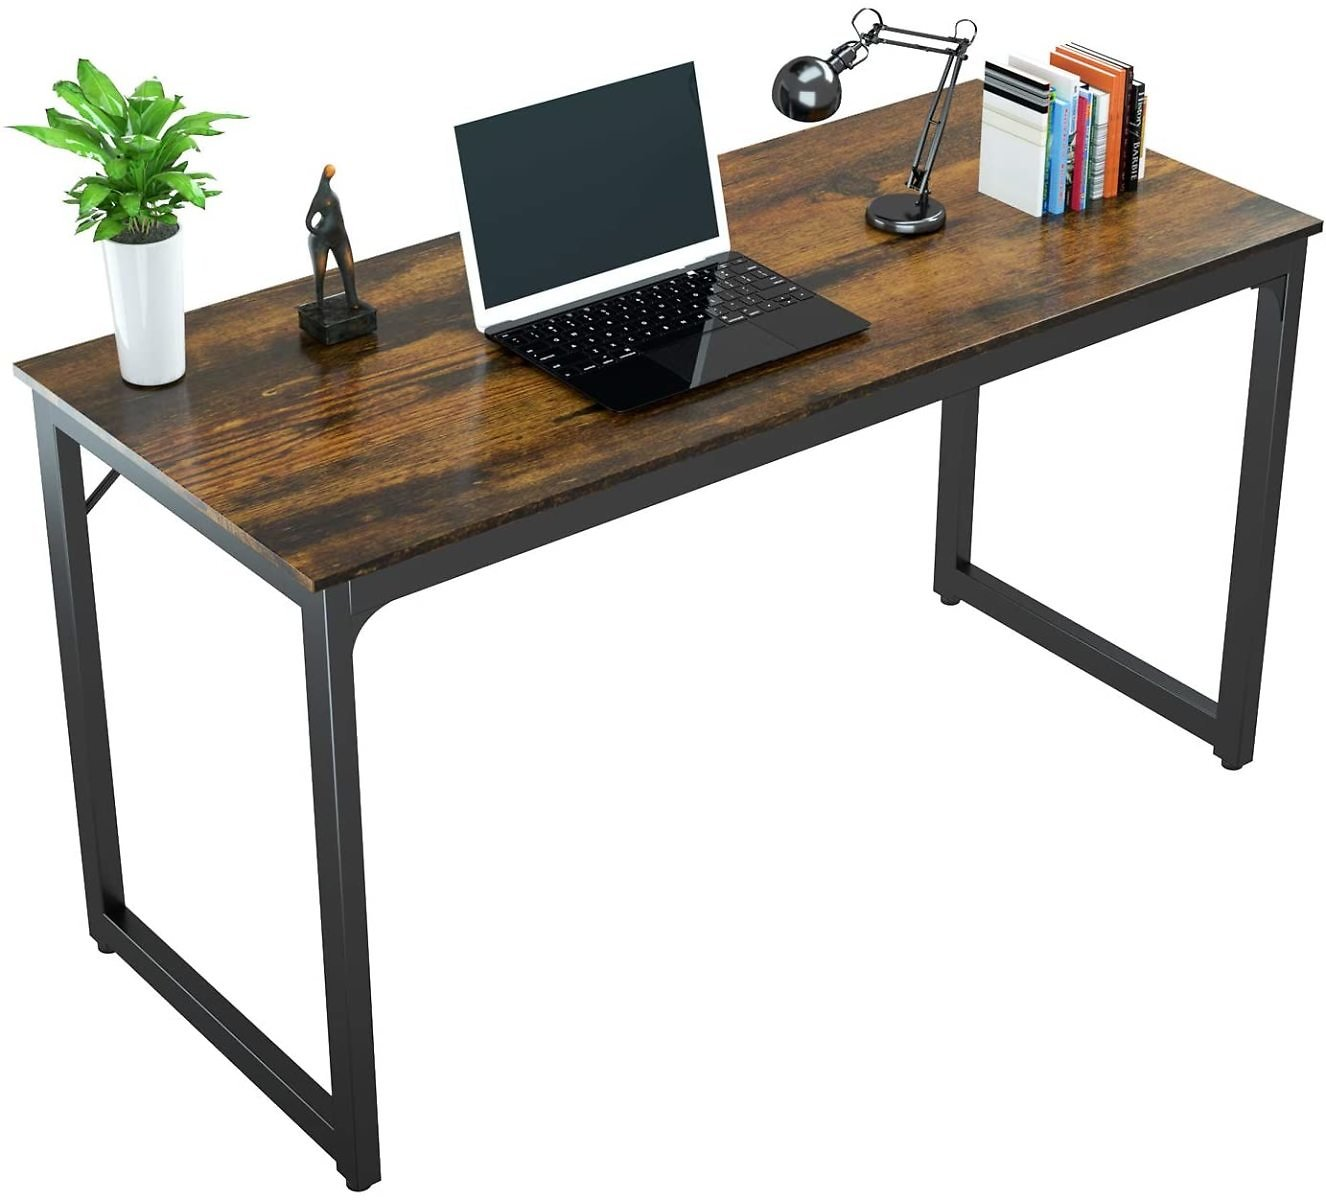 "8% Discount - Foxemart 47 Inch Computer Desk Sturdy Office Desks 47"" Modern PC Laptop Notebook Study Writing Table for Office"